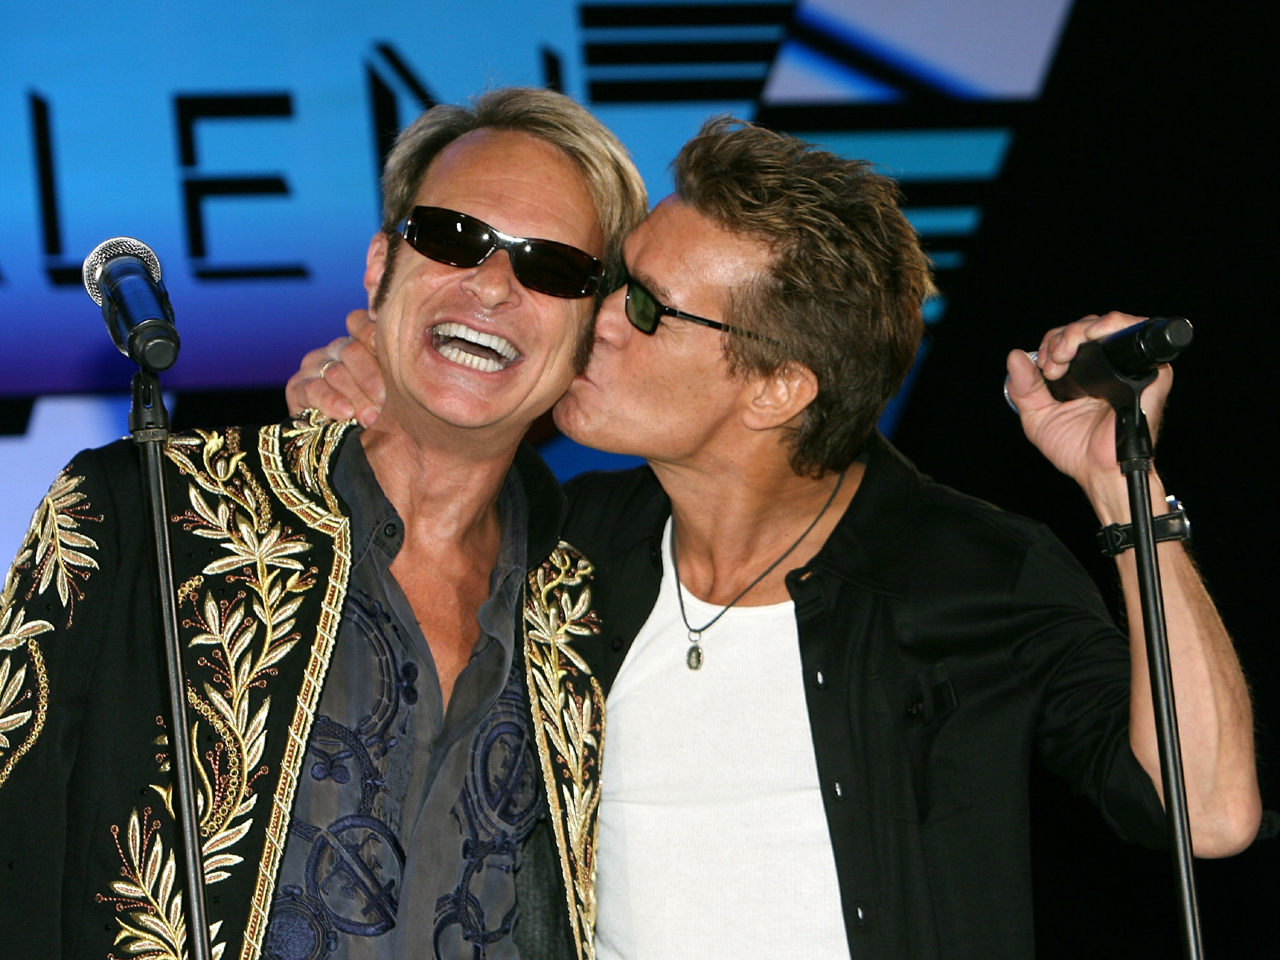 Van Halen announces 2012 tour with David Lee Roth - CBS News